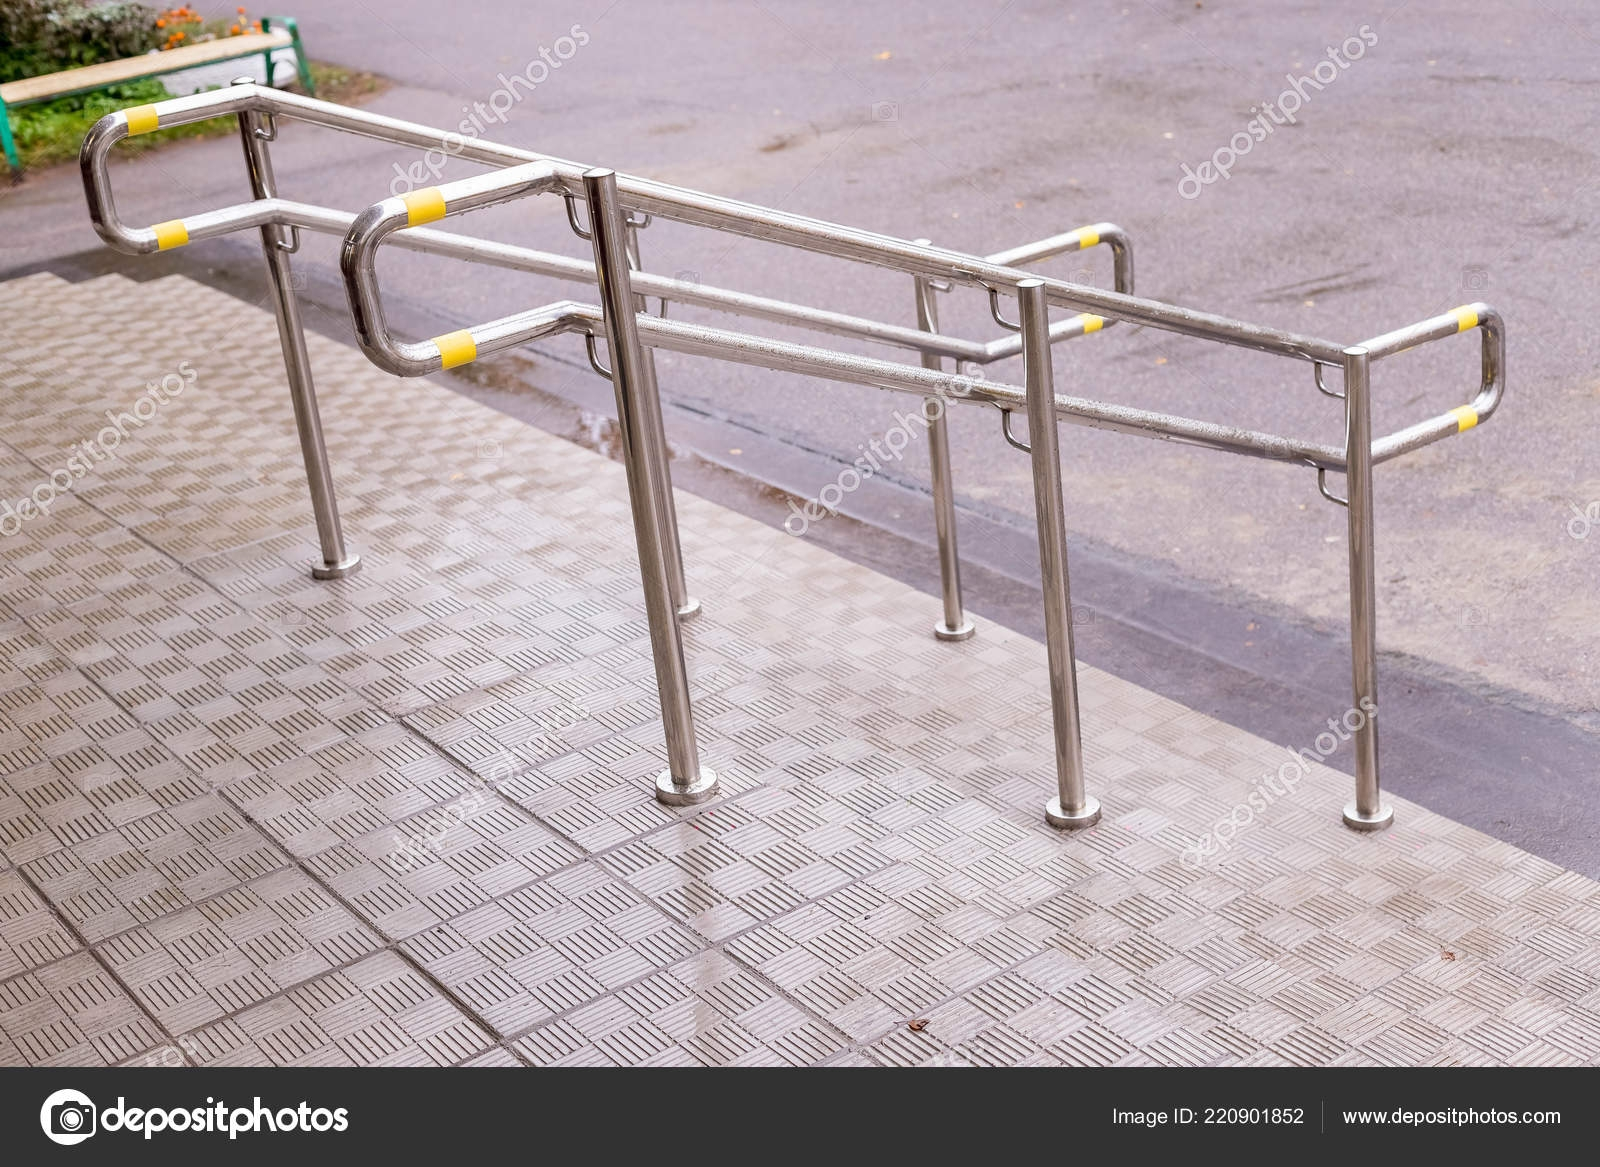 Stainless Steel Handrails Are Installed On The Walls And Steps   Stair Rails For Elderly   Stair Climbing   Down Stairs   Wood   Cmmc Handrail   Pipe